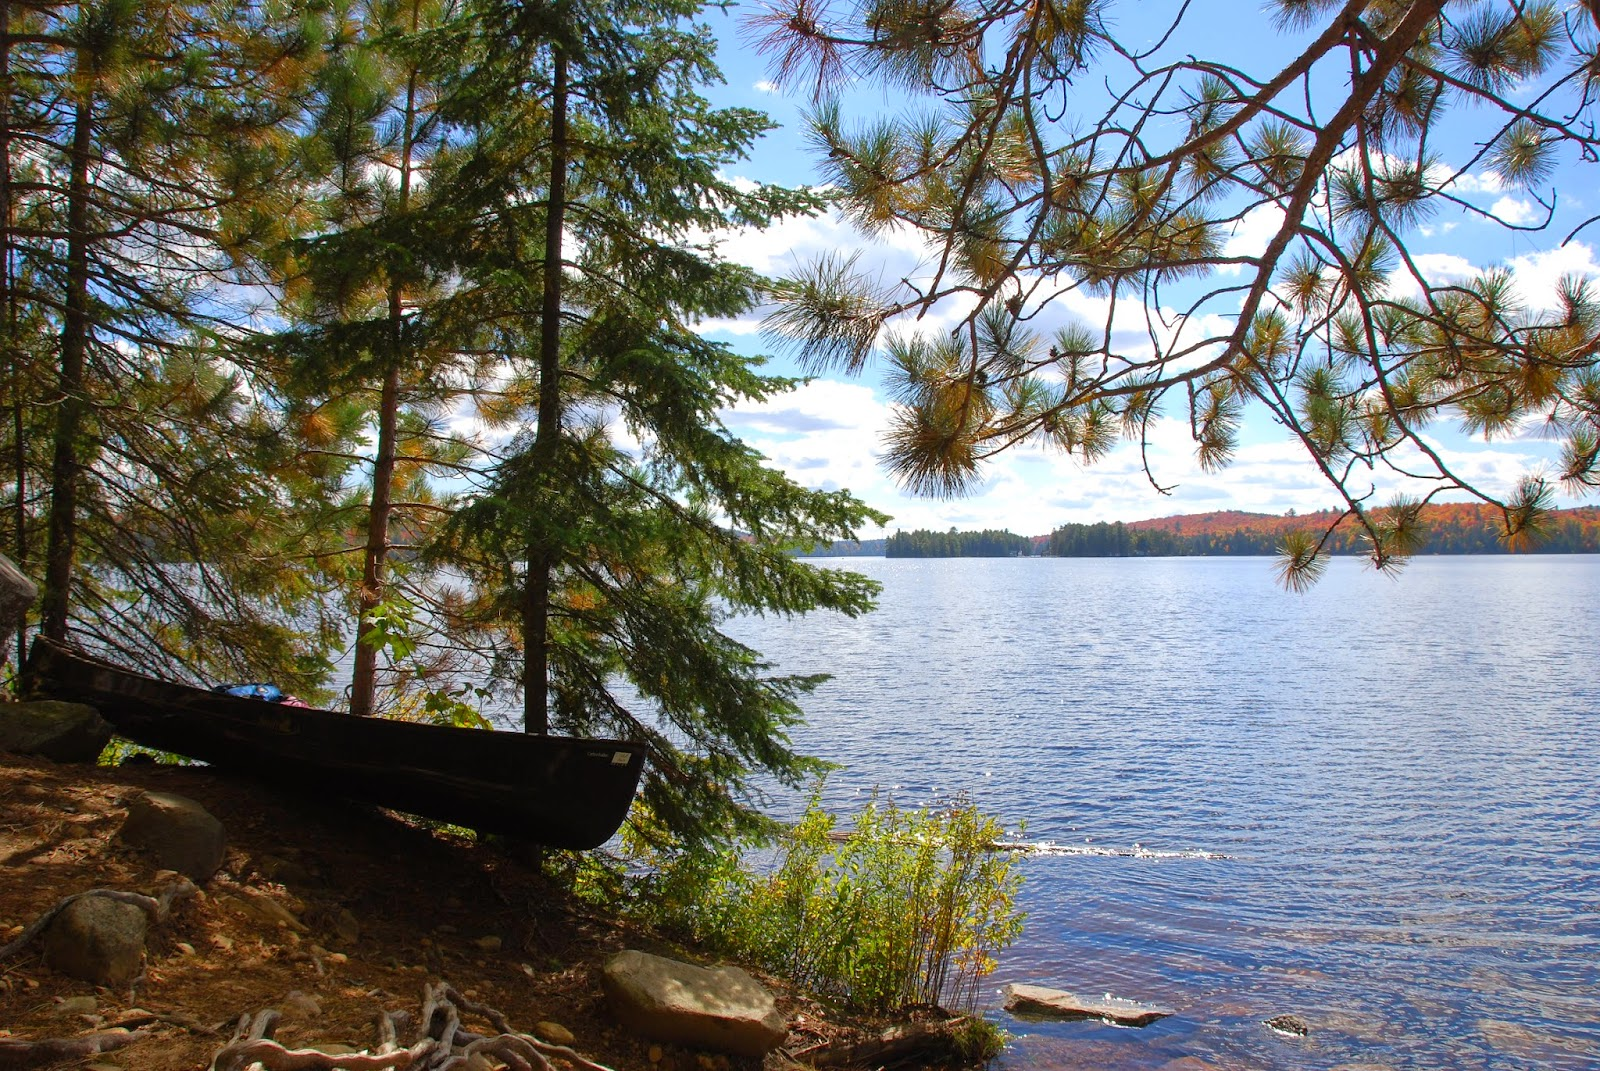 Canoe docked at Hayhurst Point on Canoe Lake